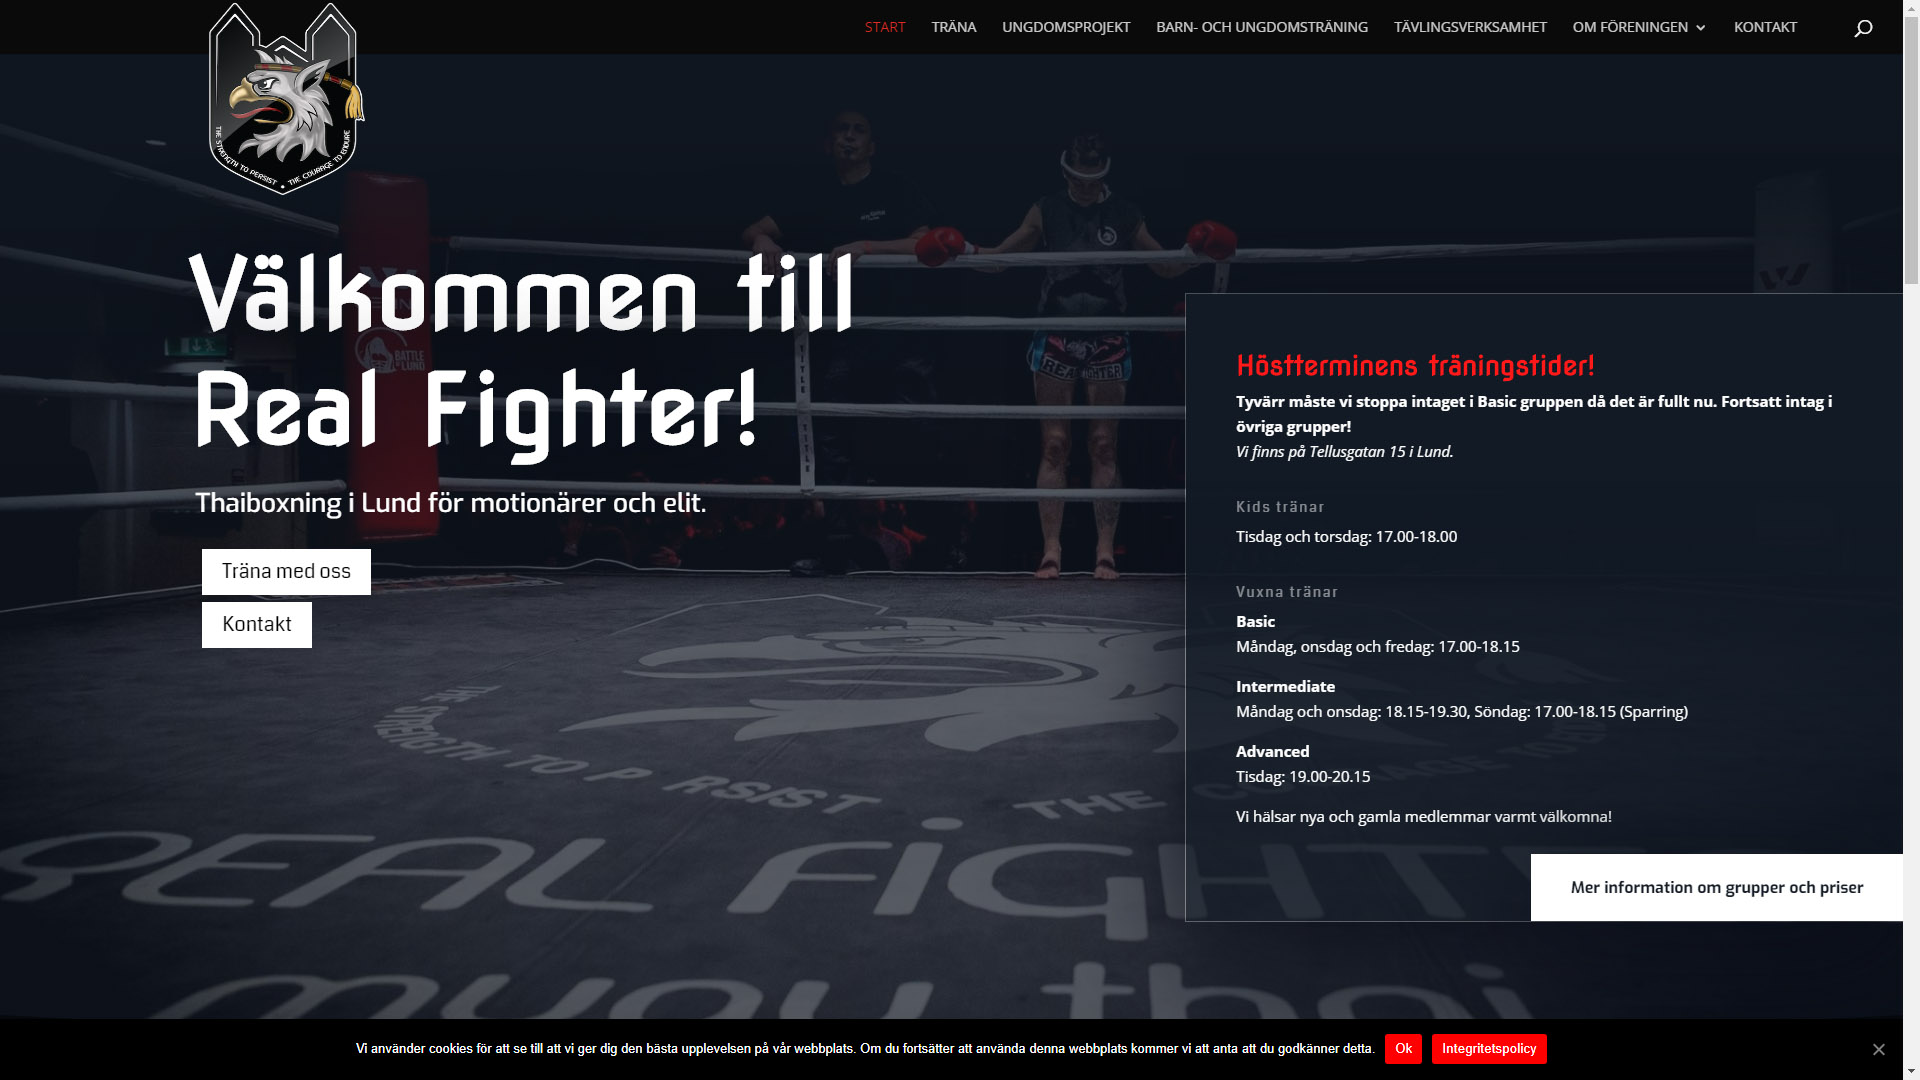 realfighter-wbpic